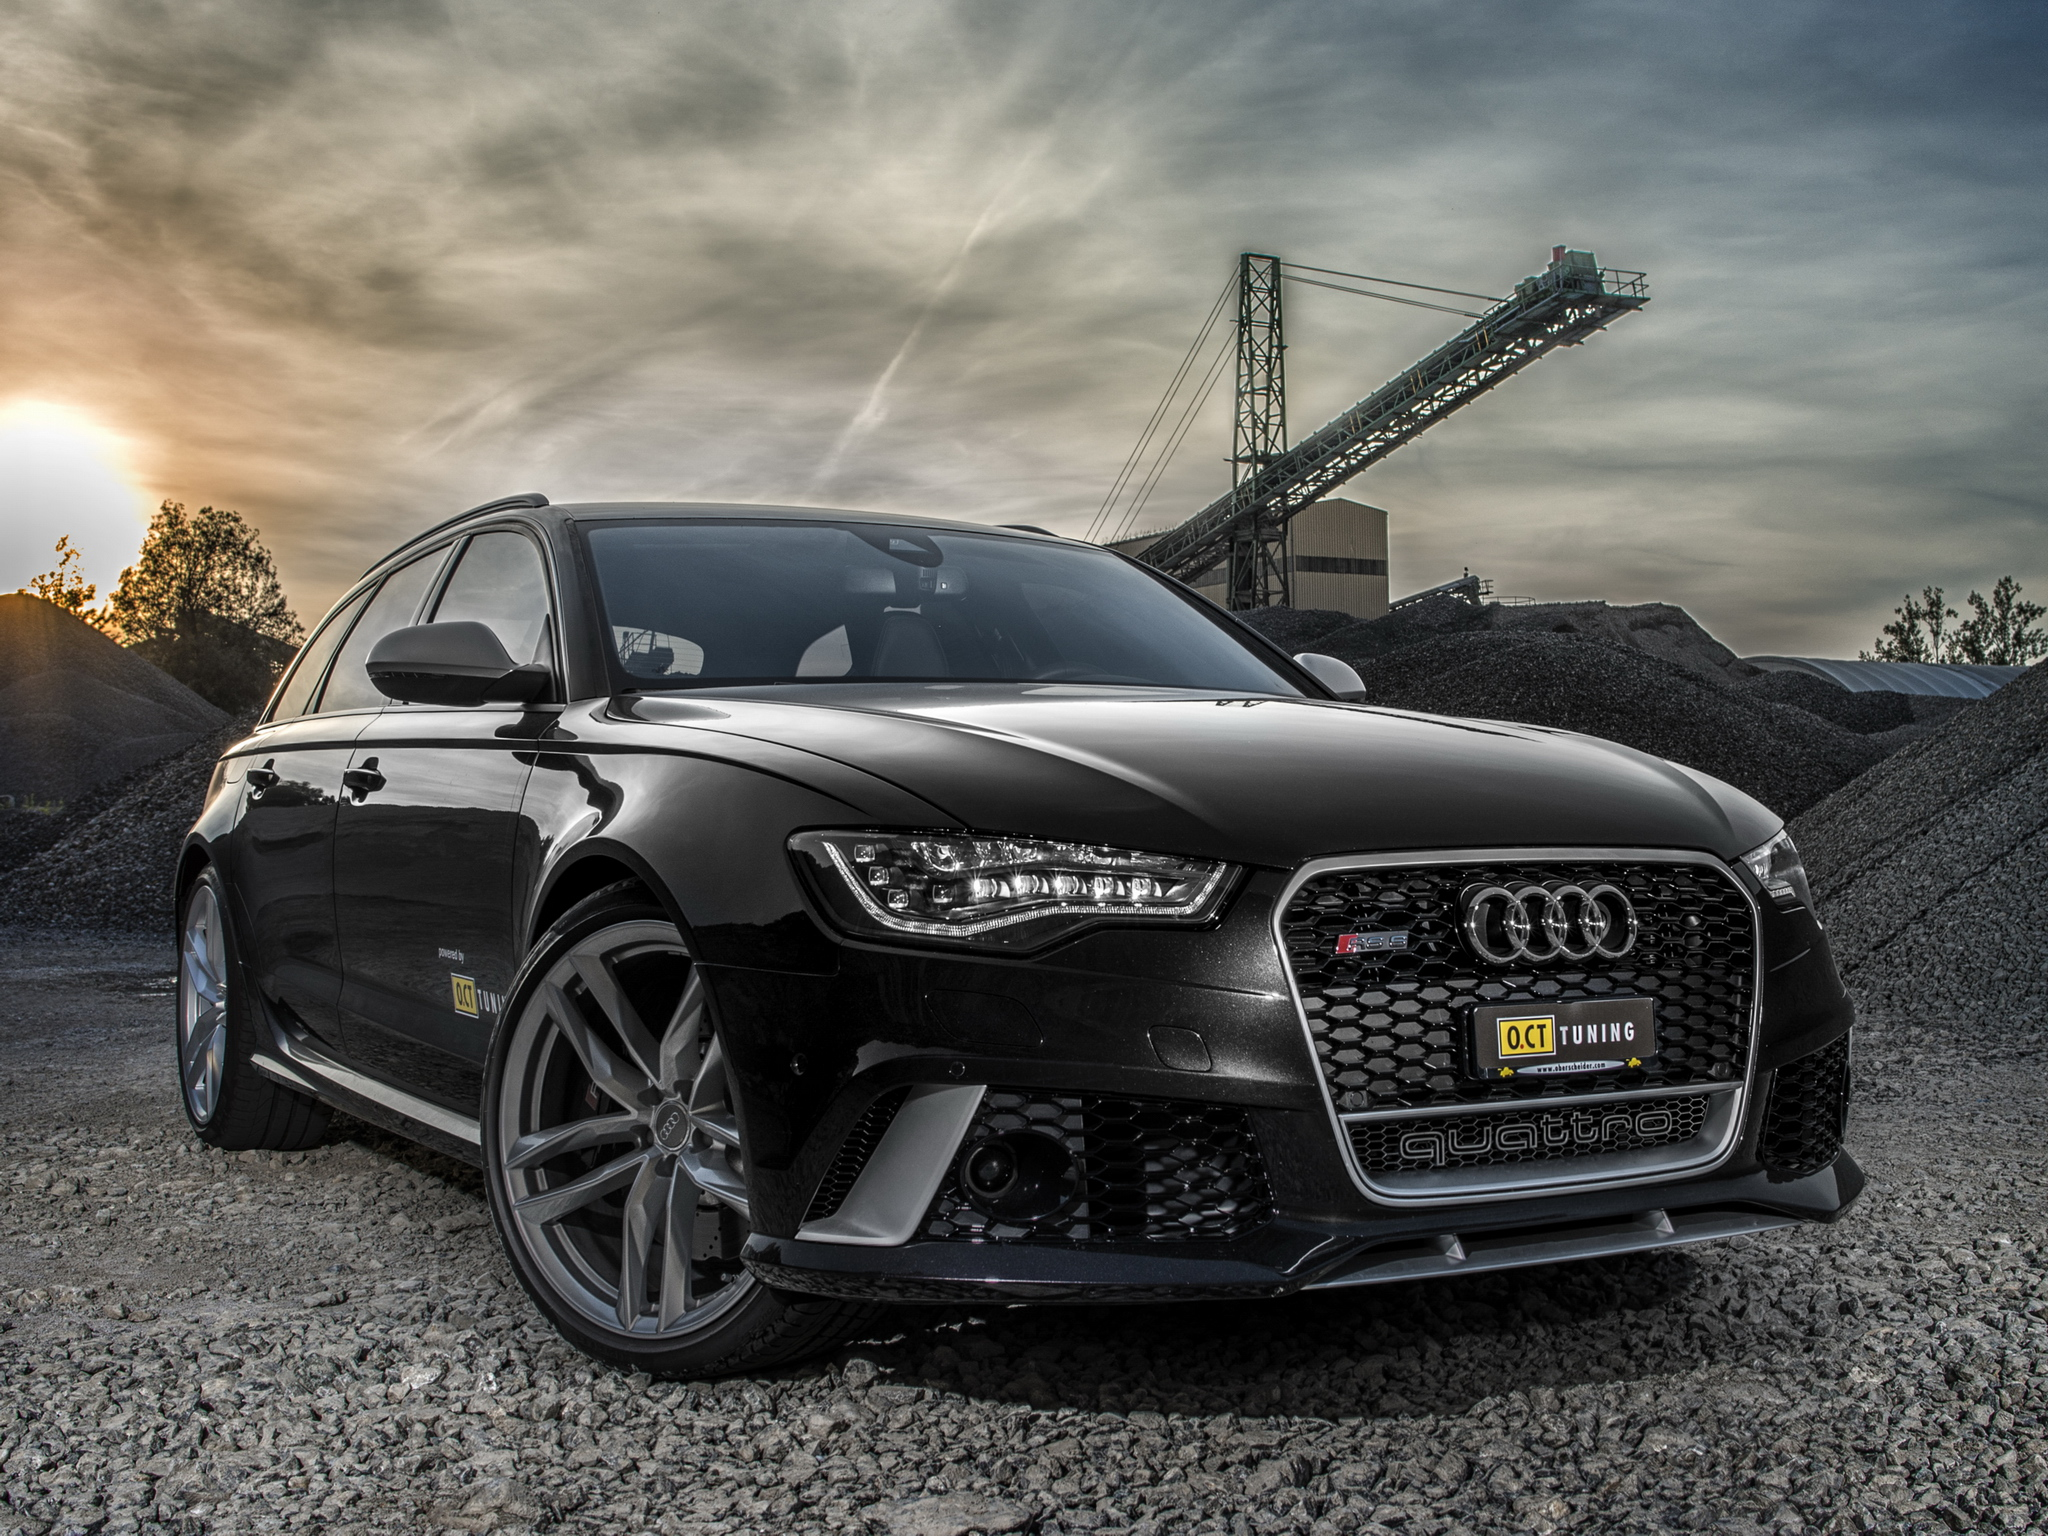 2013 Oct Tuning Audi Rs6 Avant 4gc7 Tuning Stationwagon G Wallpaper 2048x1536 167344 Wallpaperup